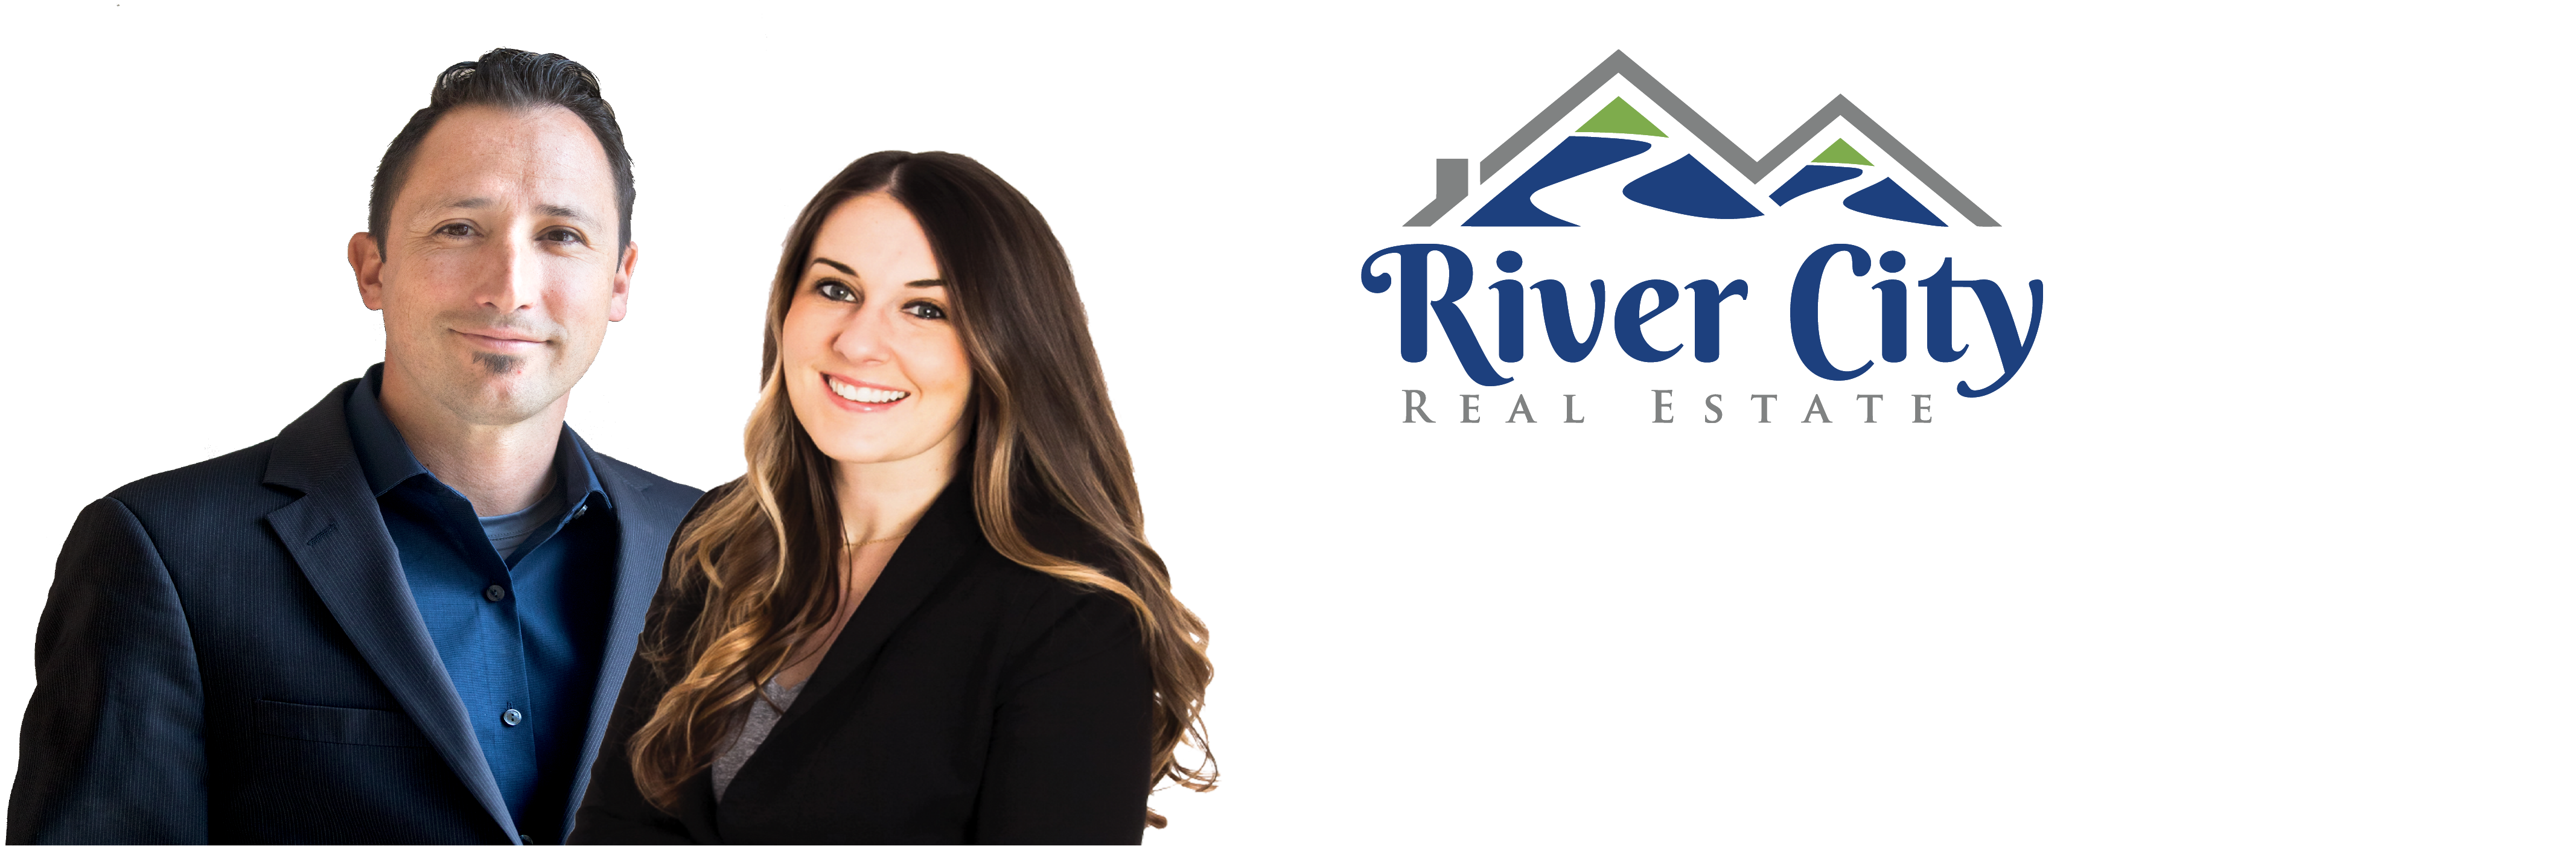 River City Real Estate Sara Oliver and Ron Walz Real Estate Agents